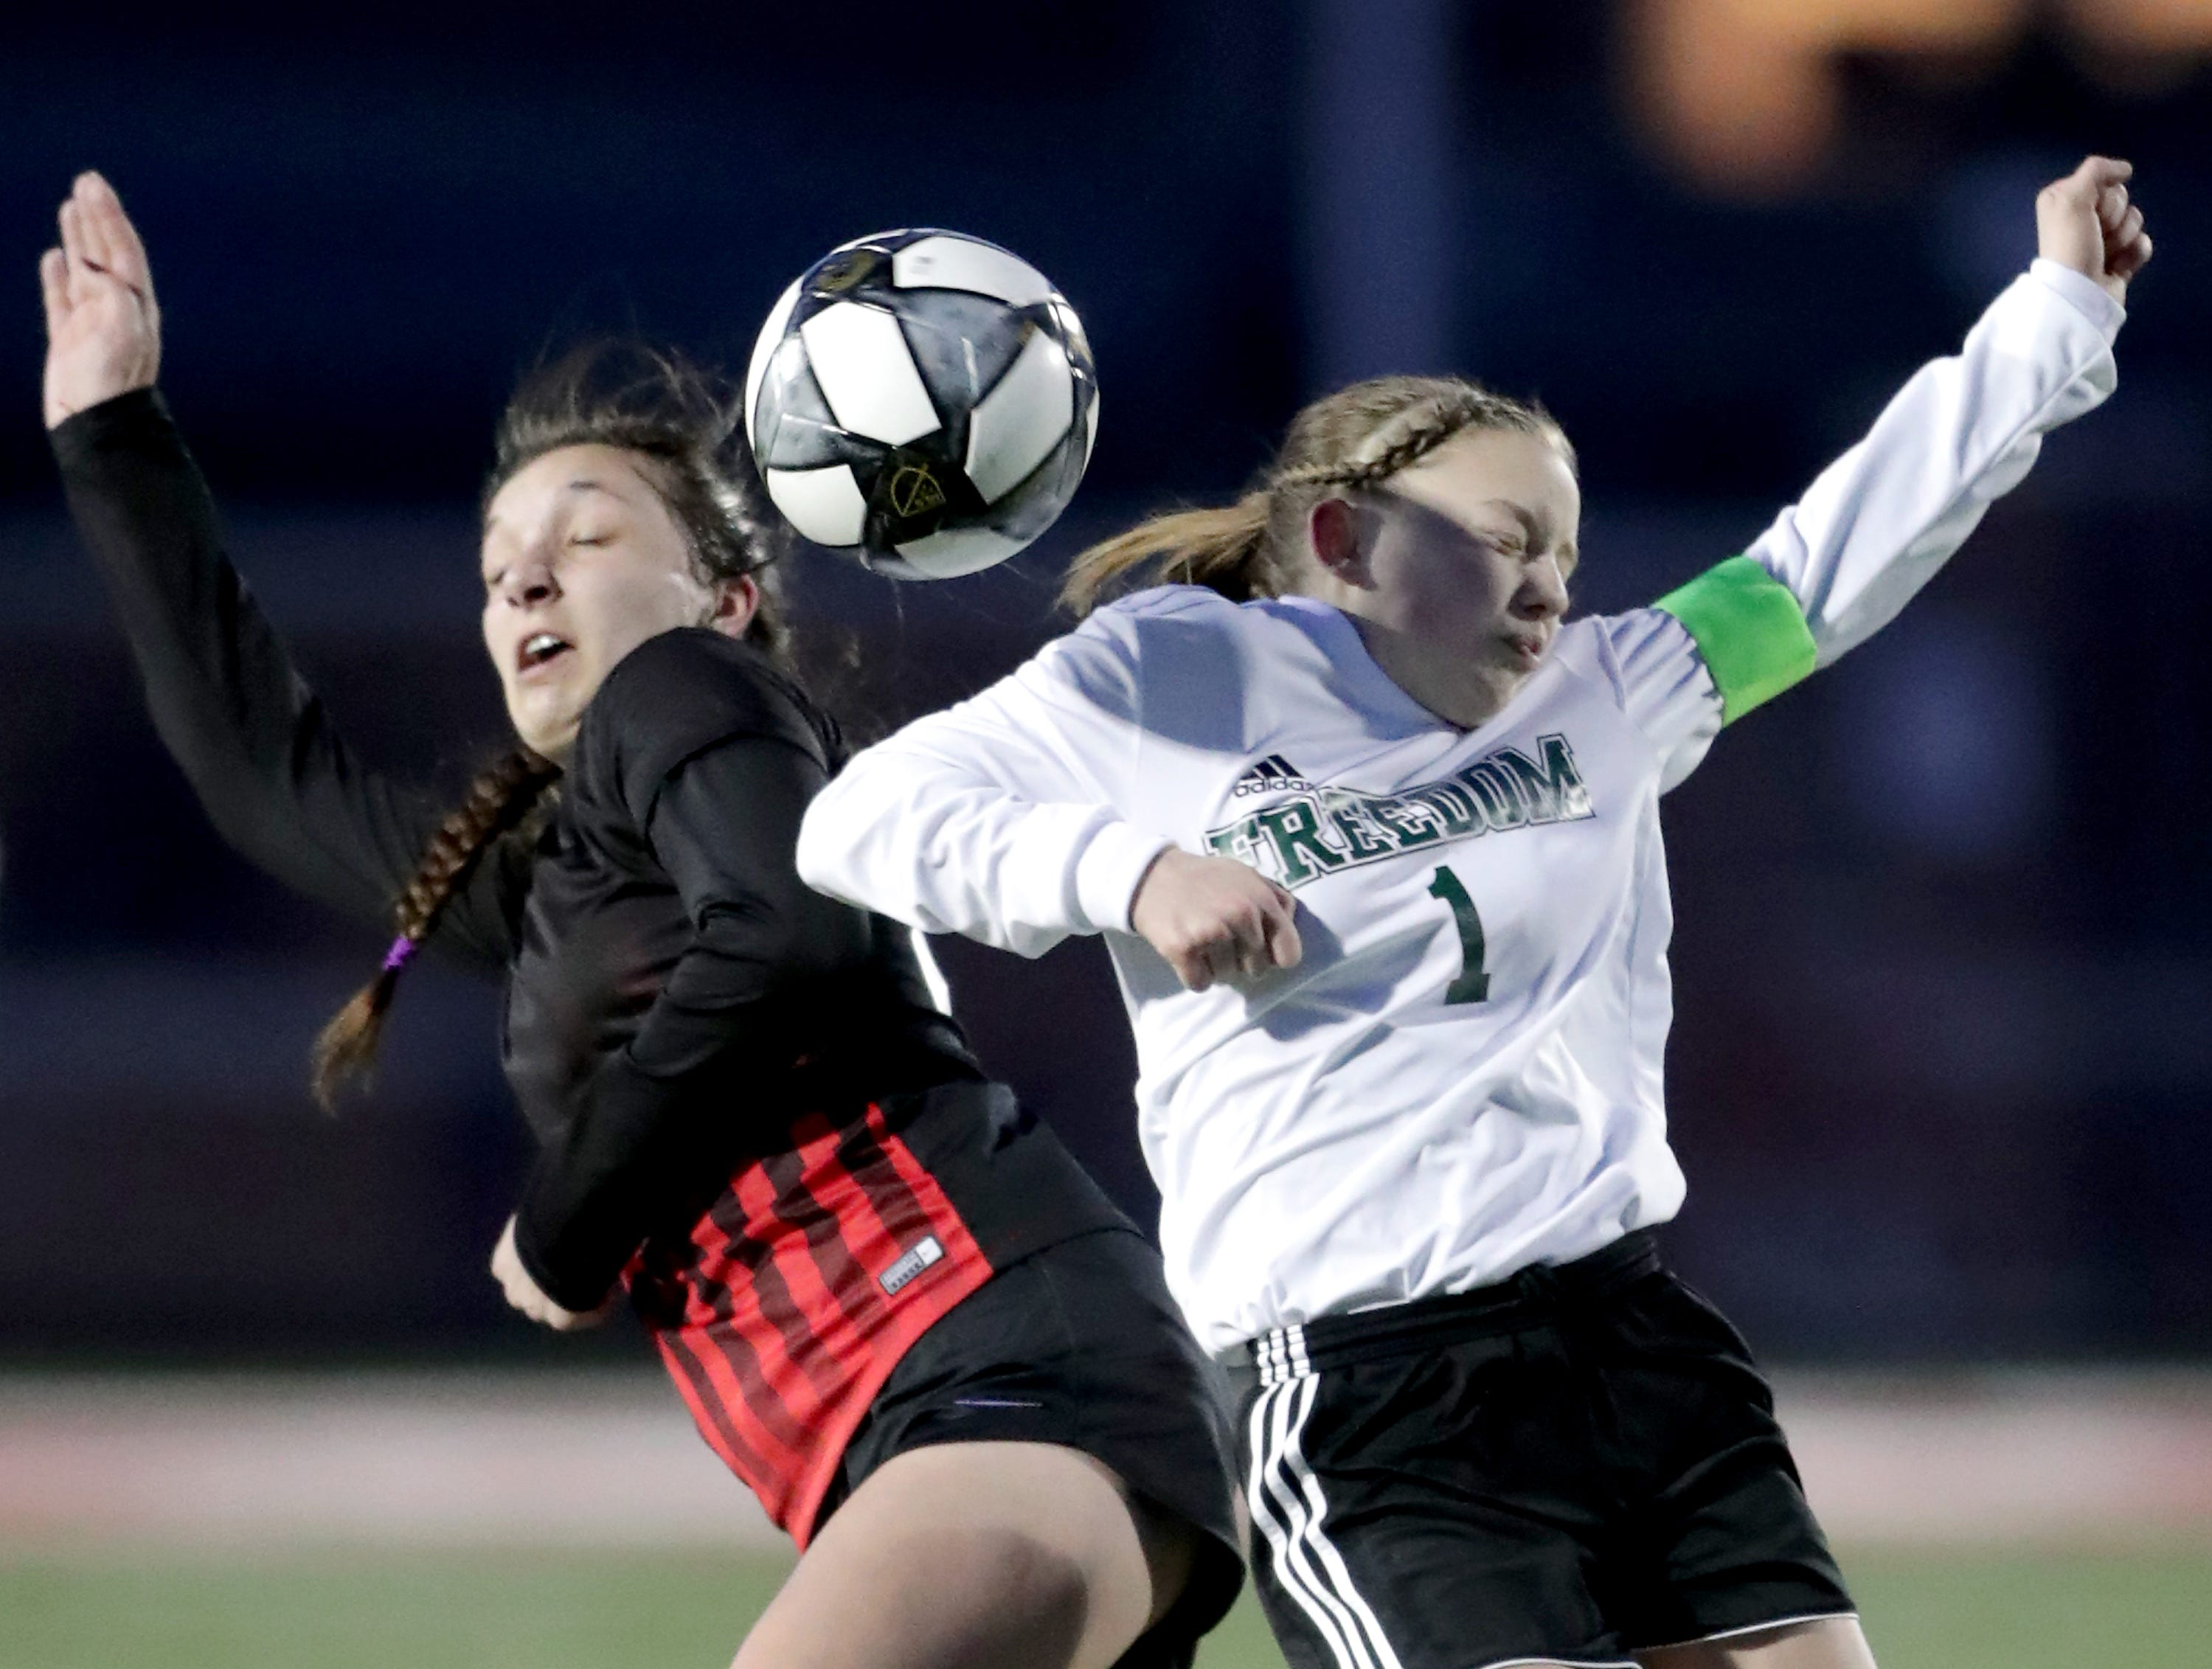 Hortonville High School's #22 Amelia Linder against Freedom High School's #1 Rosa Lezotte during their girls soccer game on Tuesday, March 26, 2019, in Hortonville, Wis. Freedom defeated Hortonville 3 to 0.Wm. Glasheen/USA TODAY NETWORK-Wisconsin.